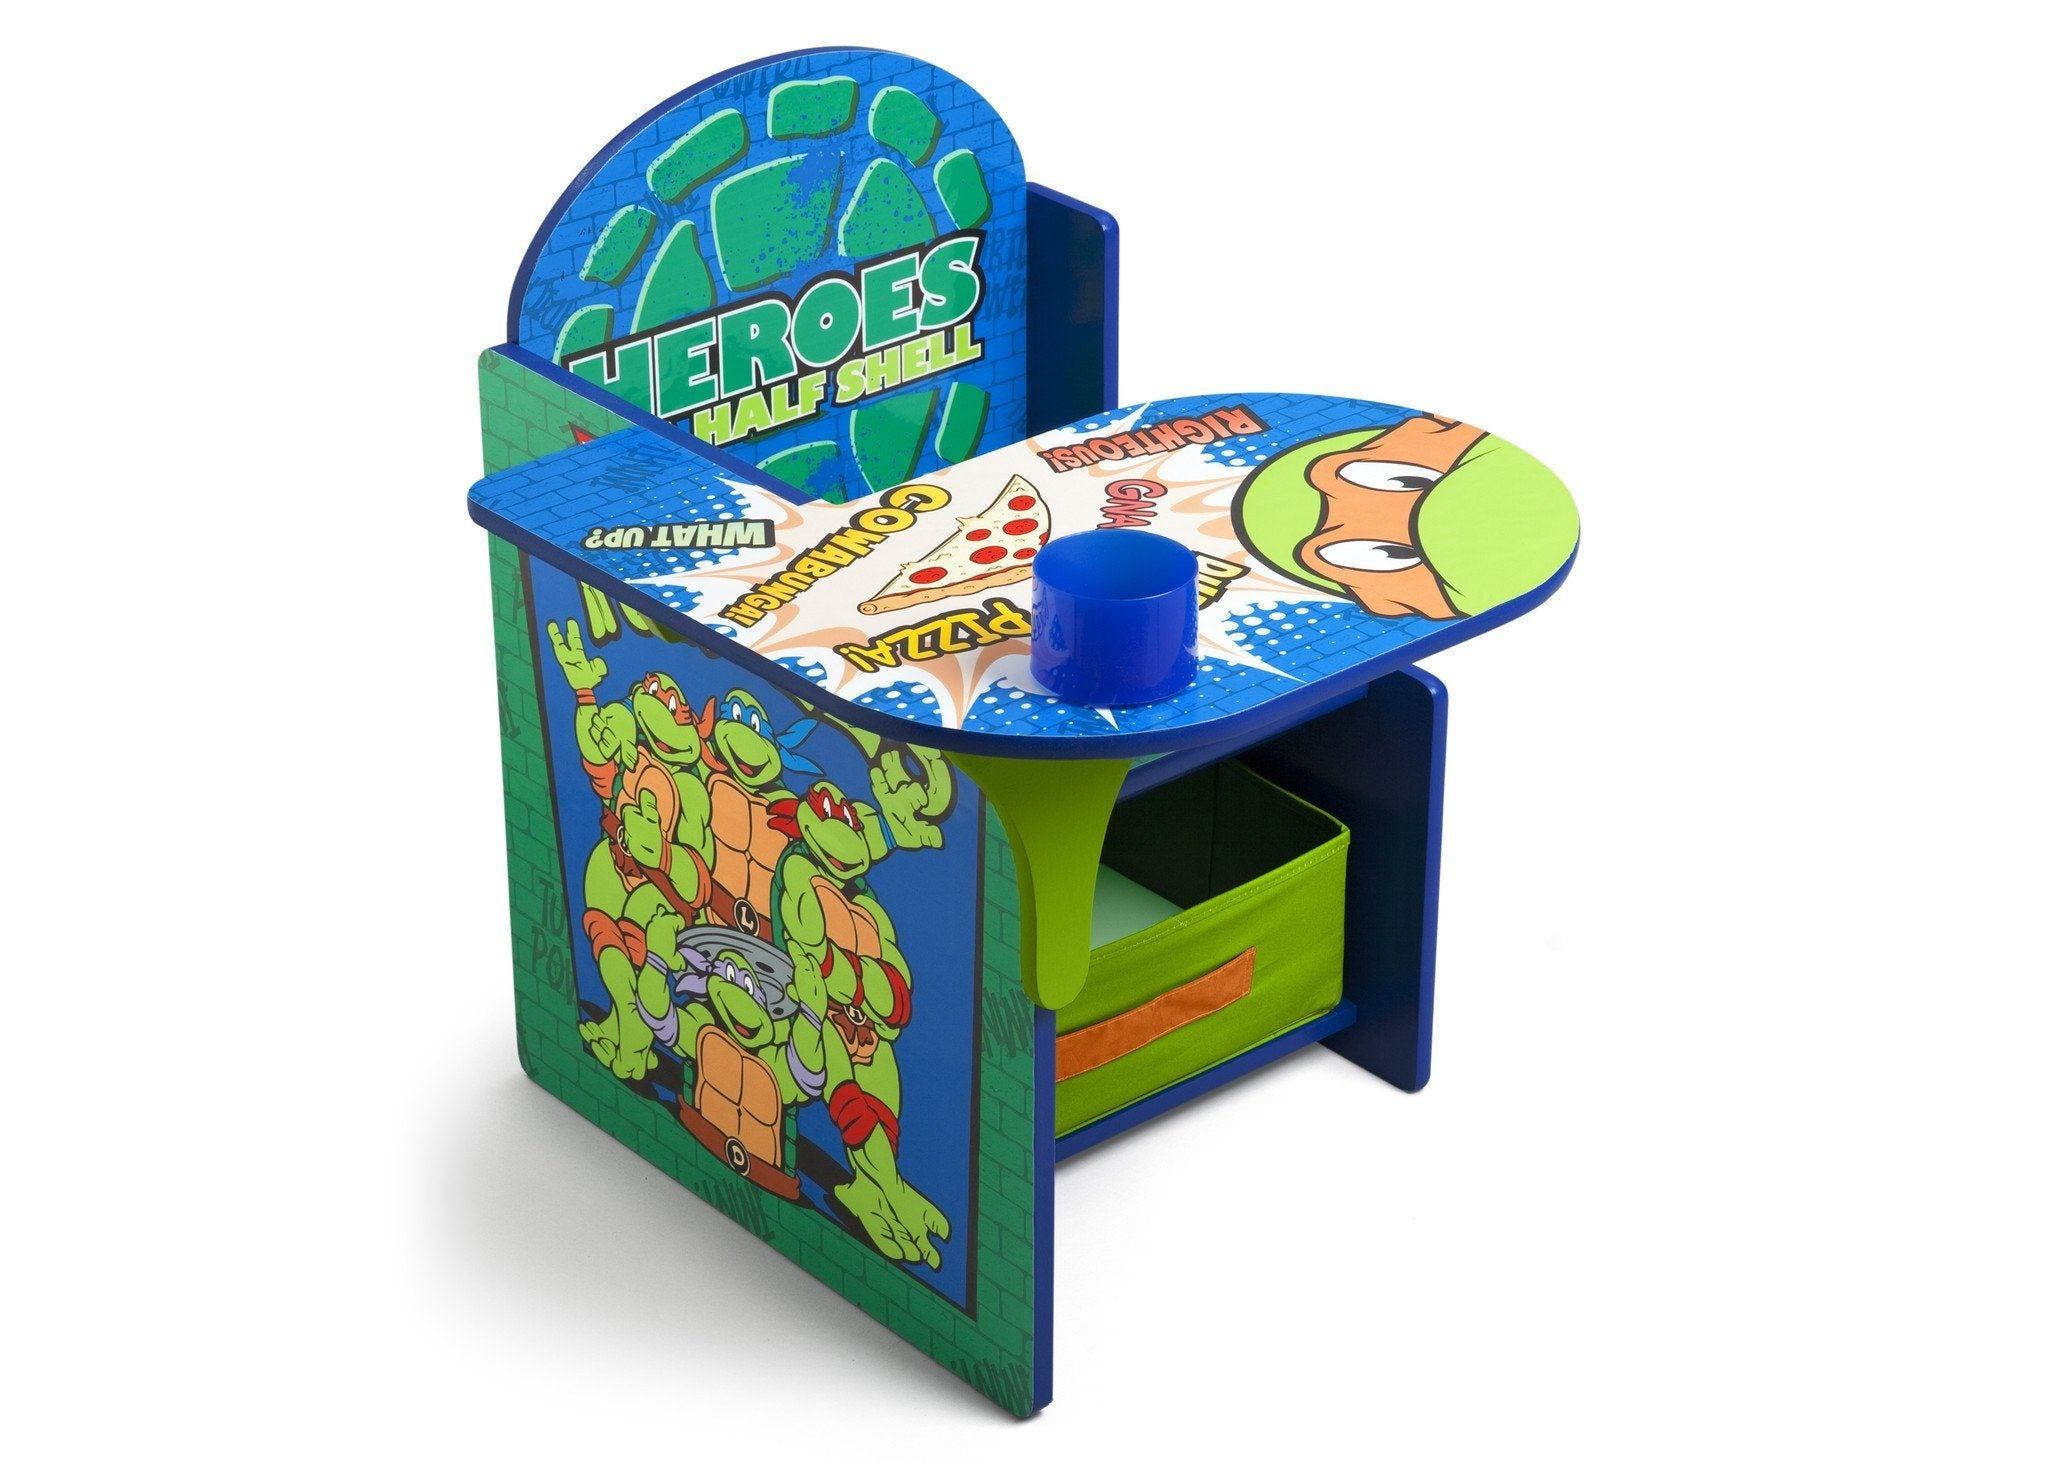 Delta Children Ninja Turtles Chair Desk with Storage Bin Right Side View a1a Ninja Turtles (1117)